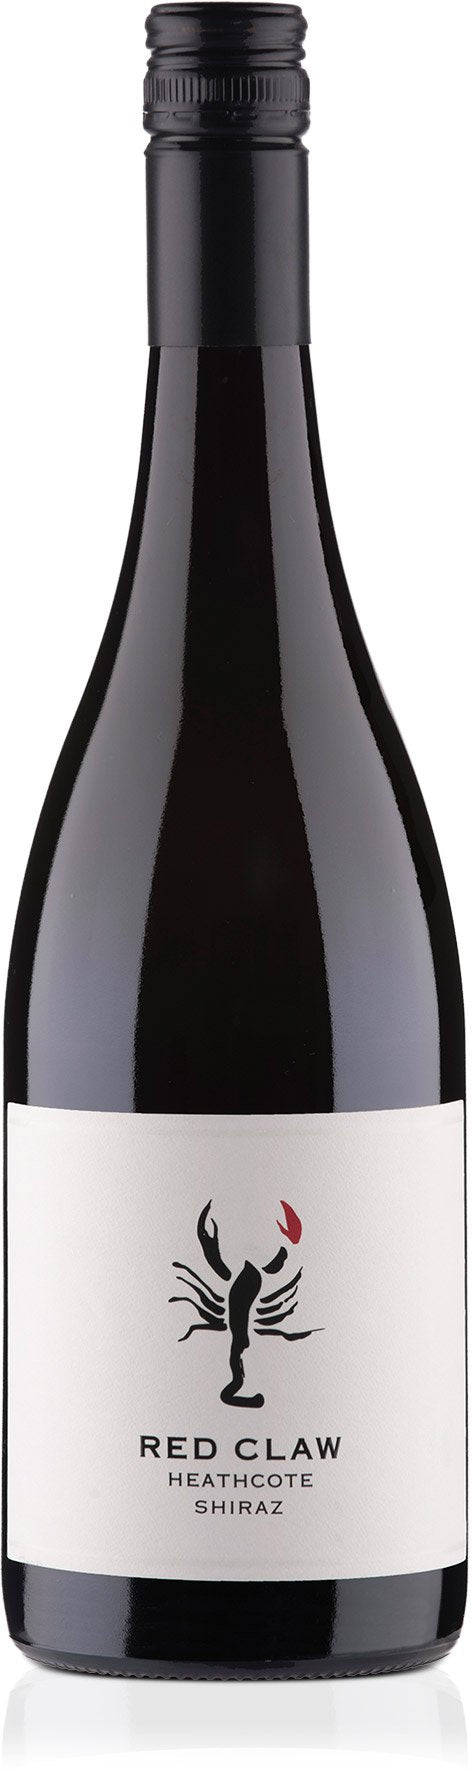 Red Claw-2017 Red Claw 375ml Shiraz-Pubble Alcohol Delivery